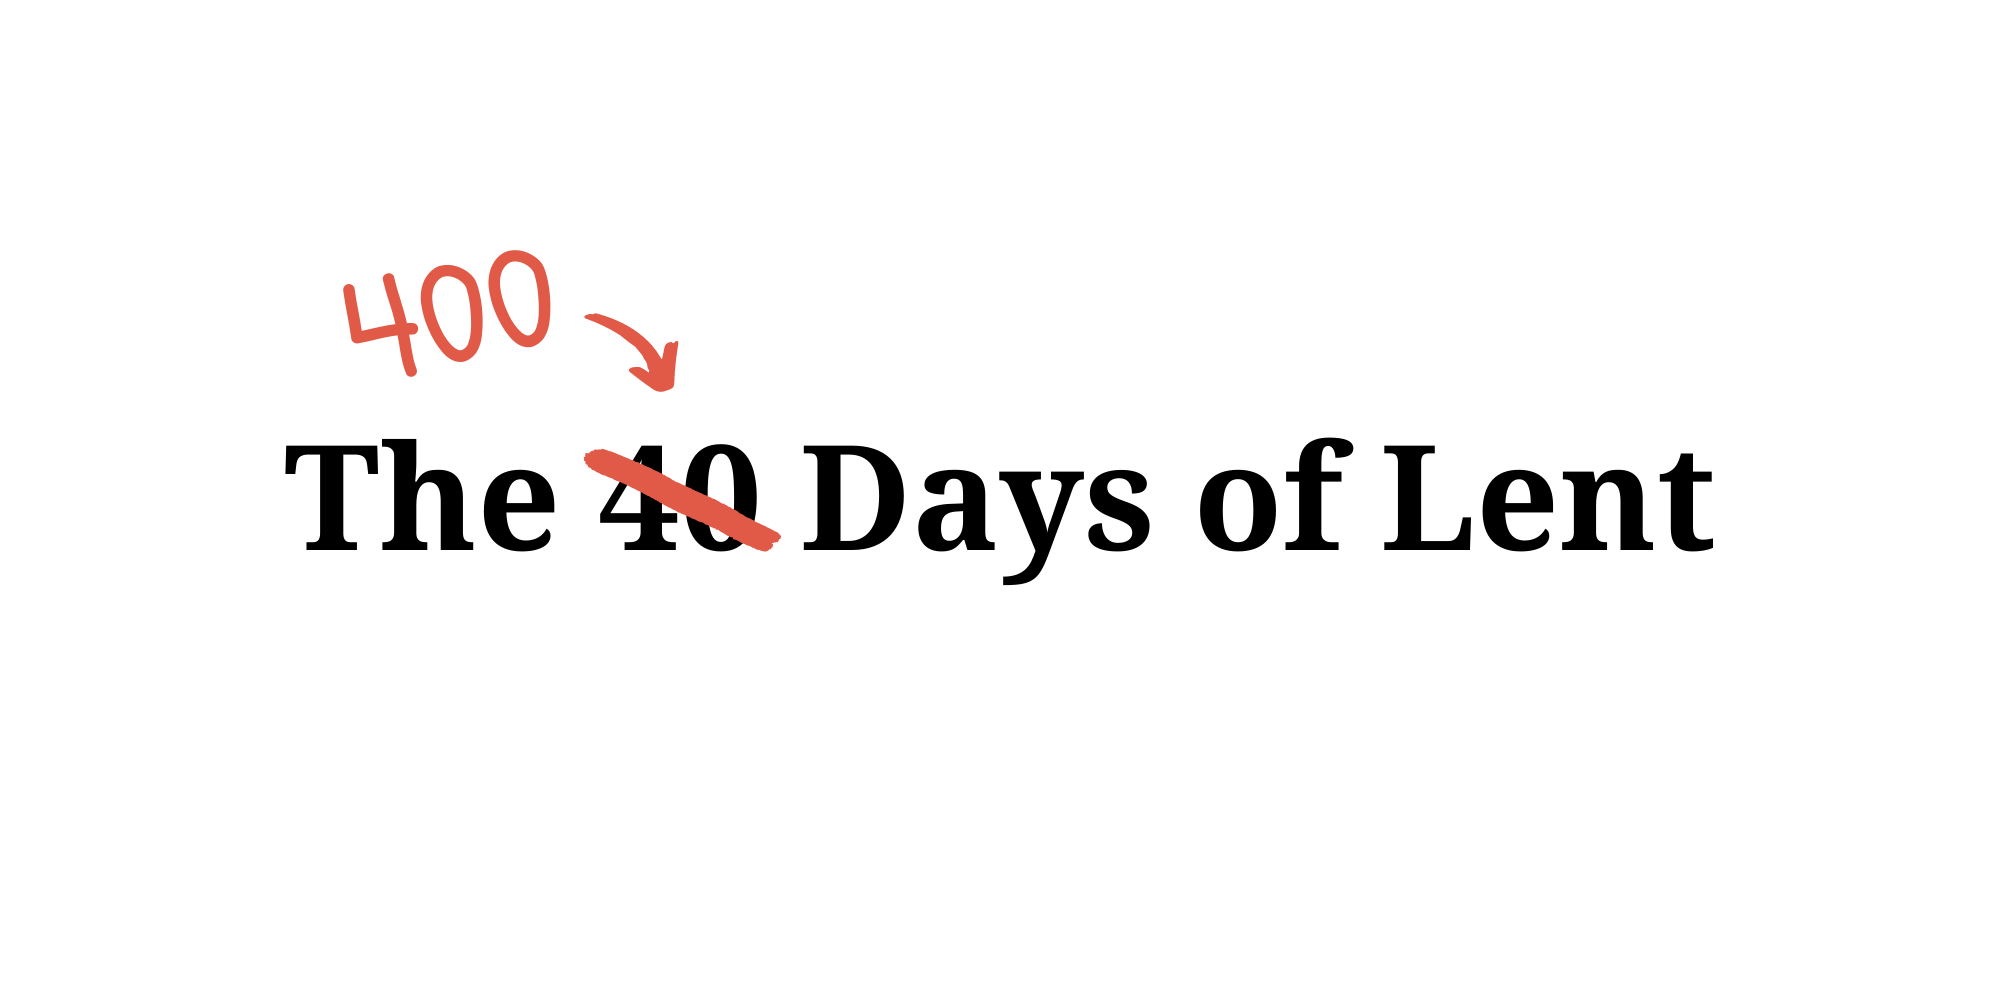 The 40(0) Days of Lent